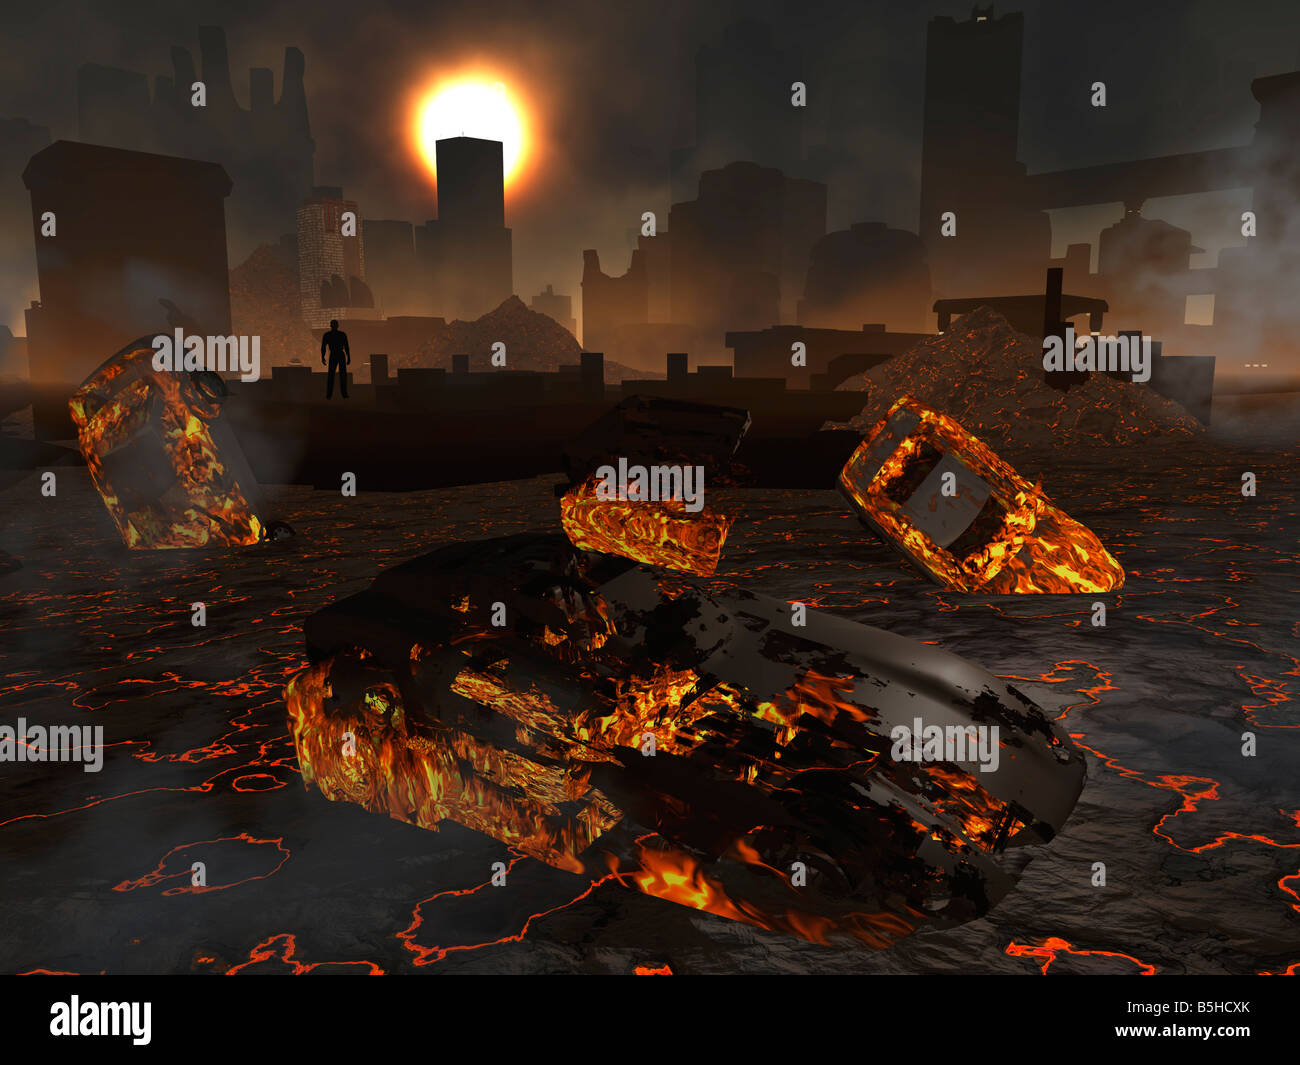 The End Of Days A City Destroyed By A Natural Disaster Or By A Nuclear Attack Either Terrorist Or Foreign Power - Stock Image